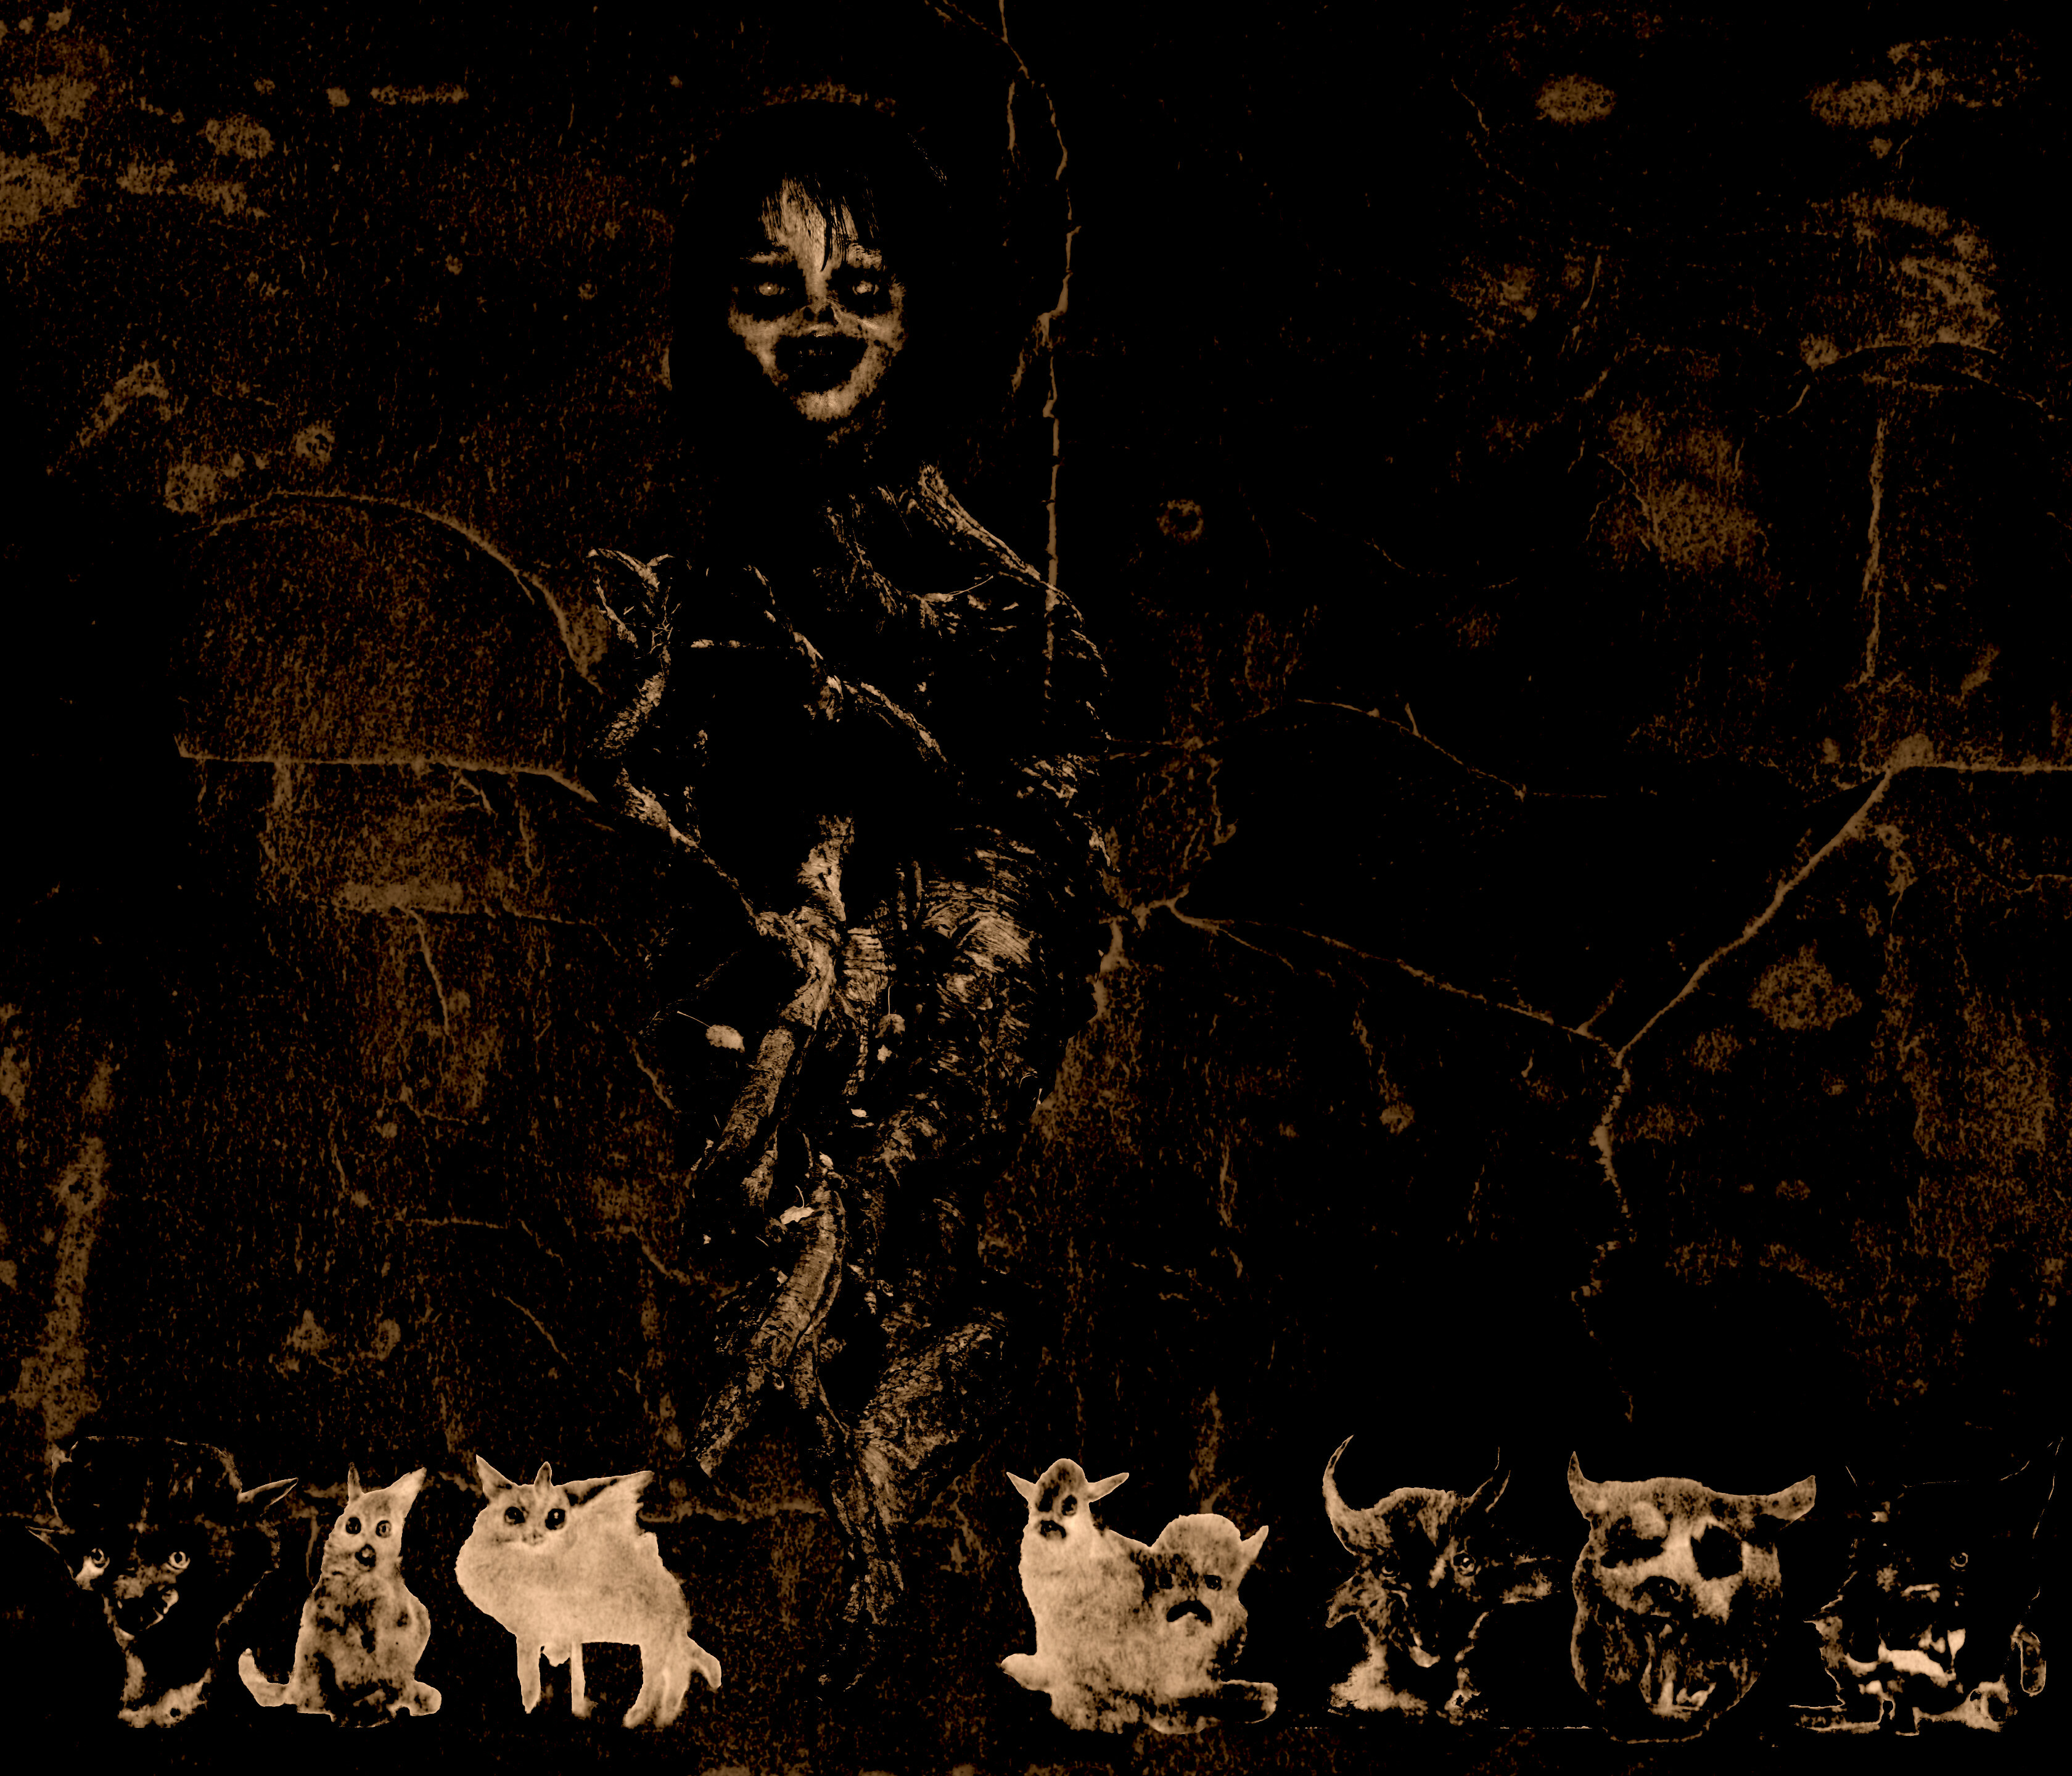 The Woodwitch and her seven cats